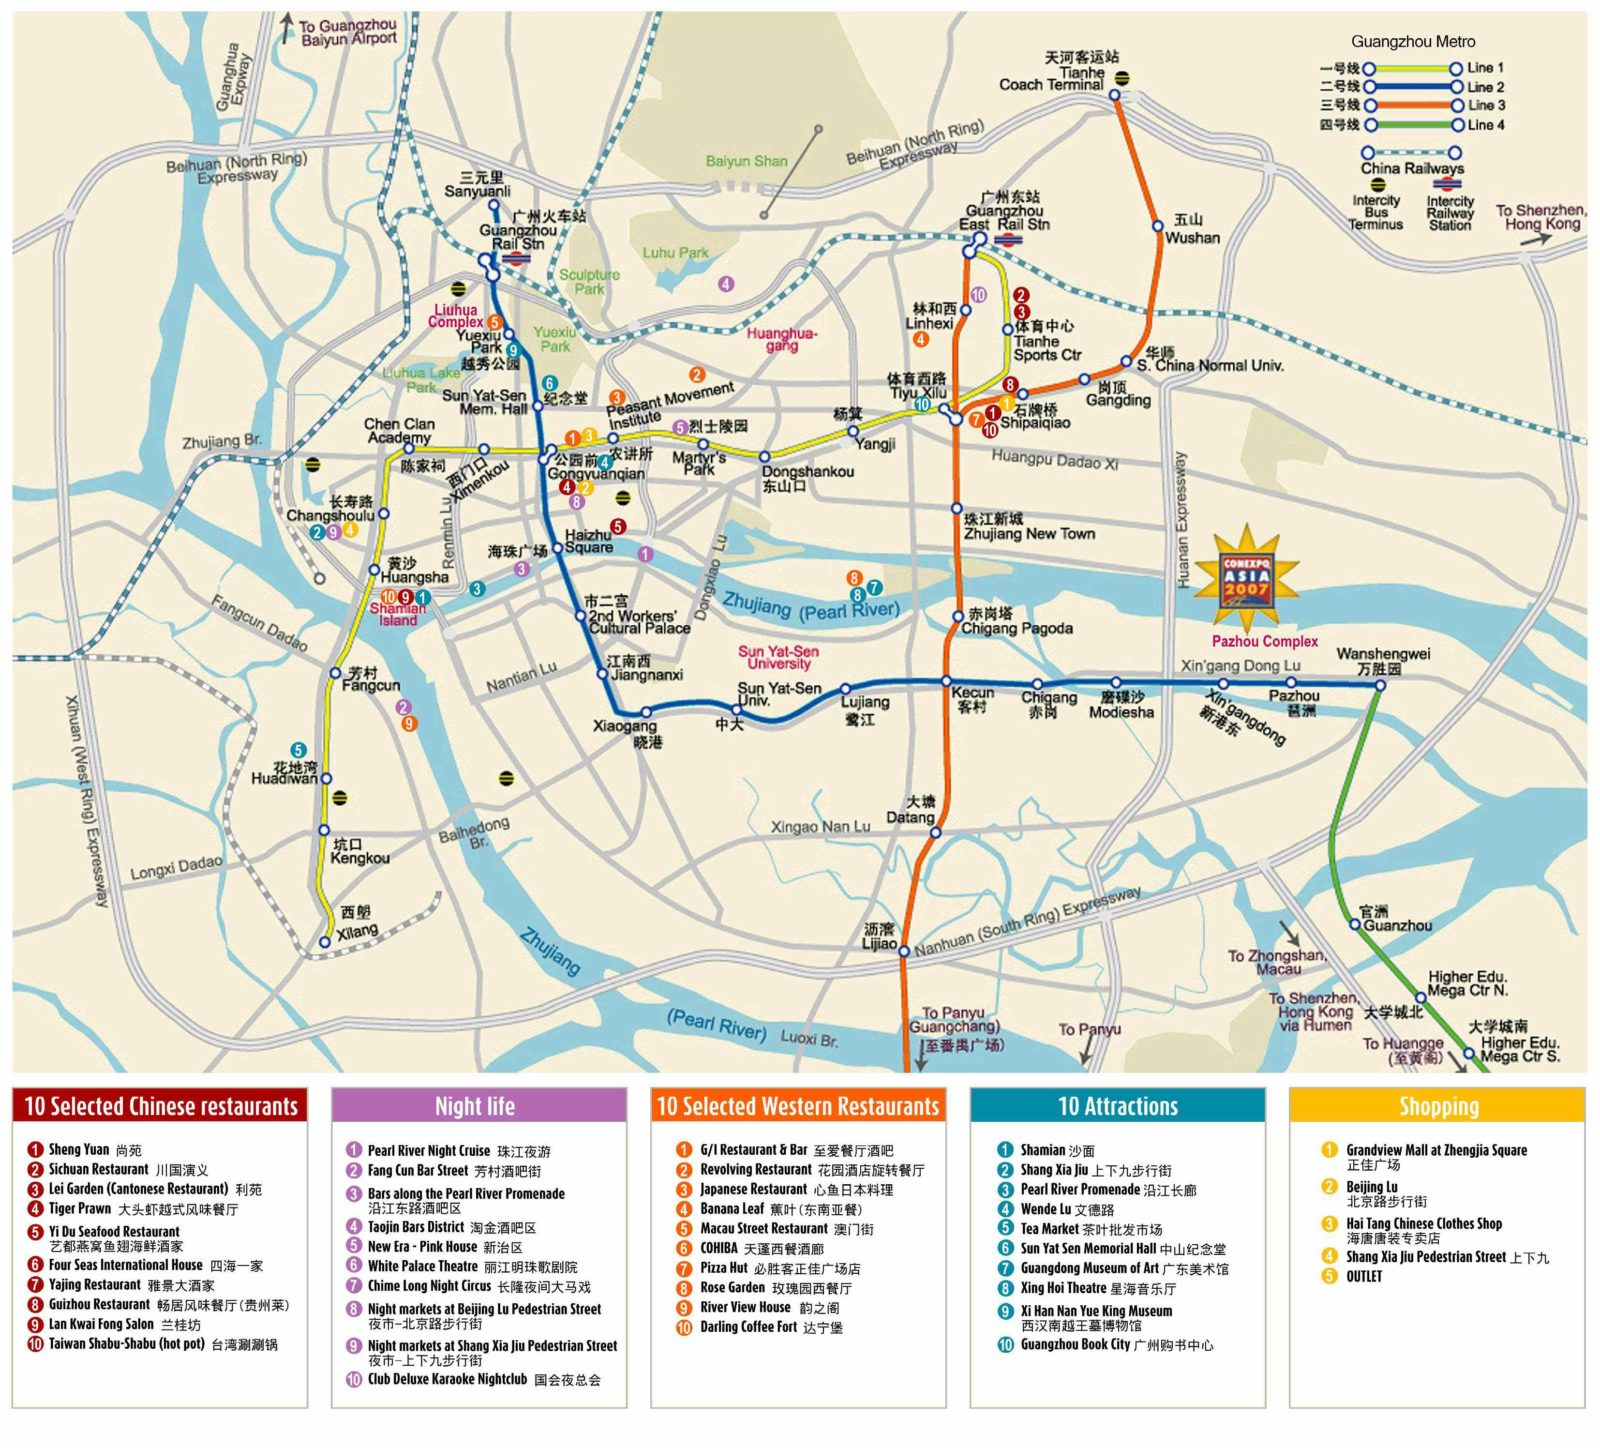 Guangzhou map 20102011 Printable metro subway touristtravel maps